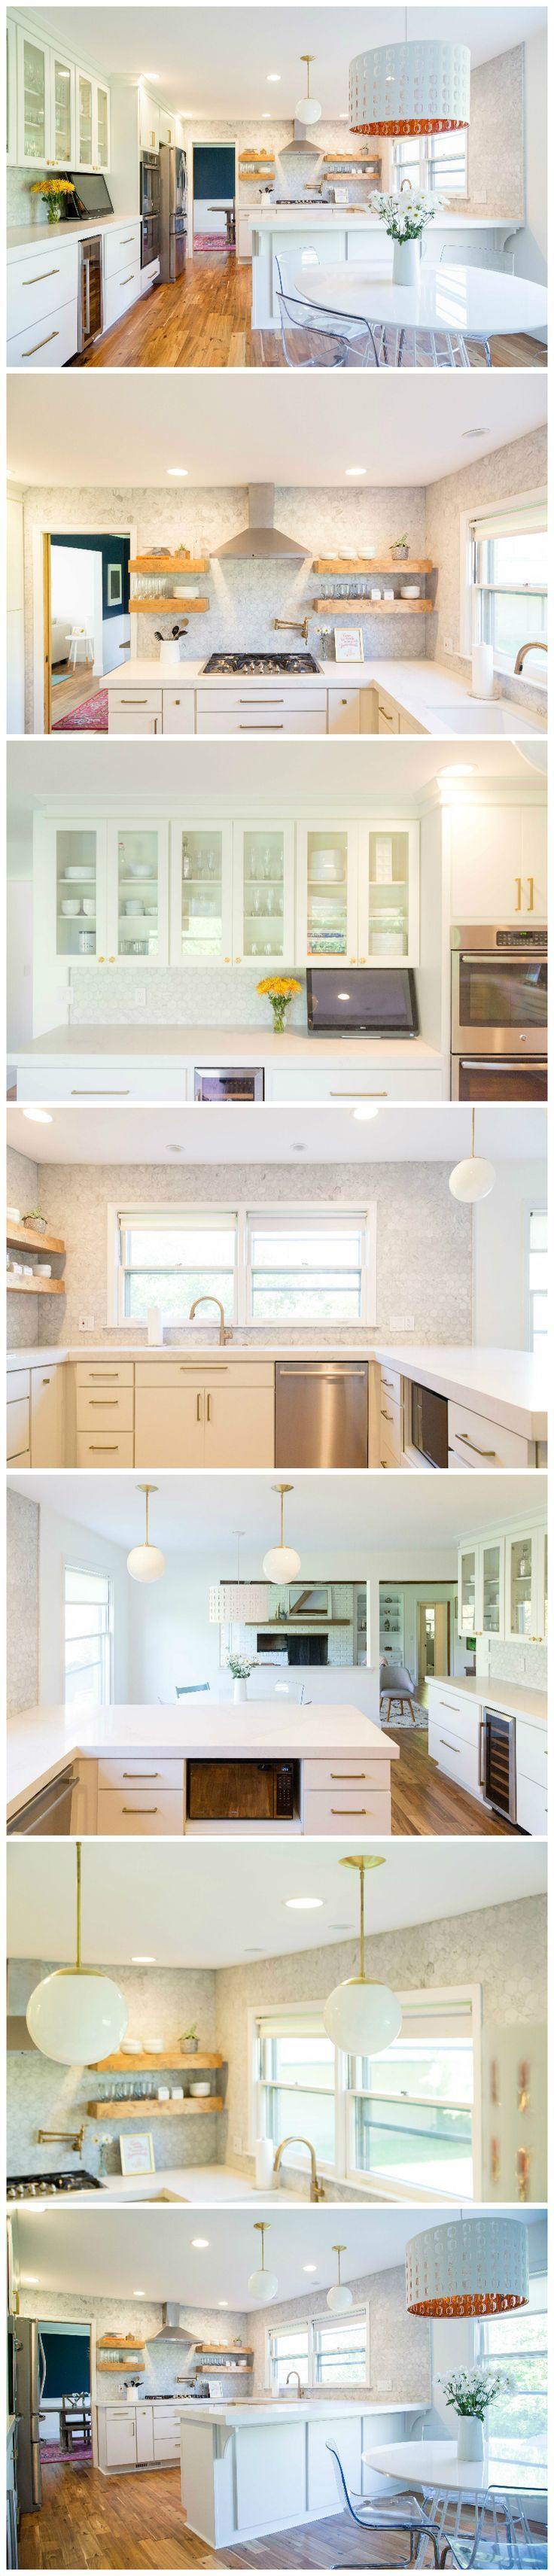 our new kitchen kitchen reno kitchens and remodeling ideas